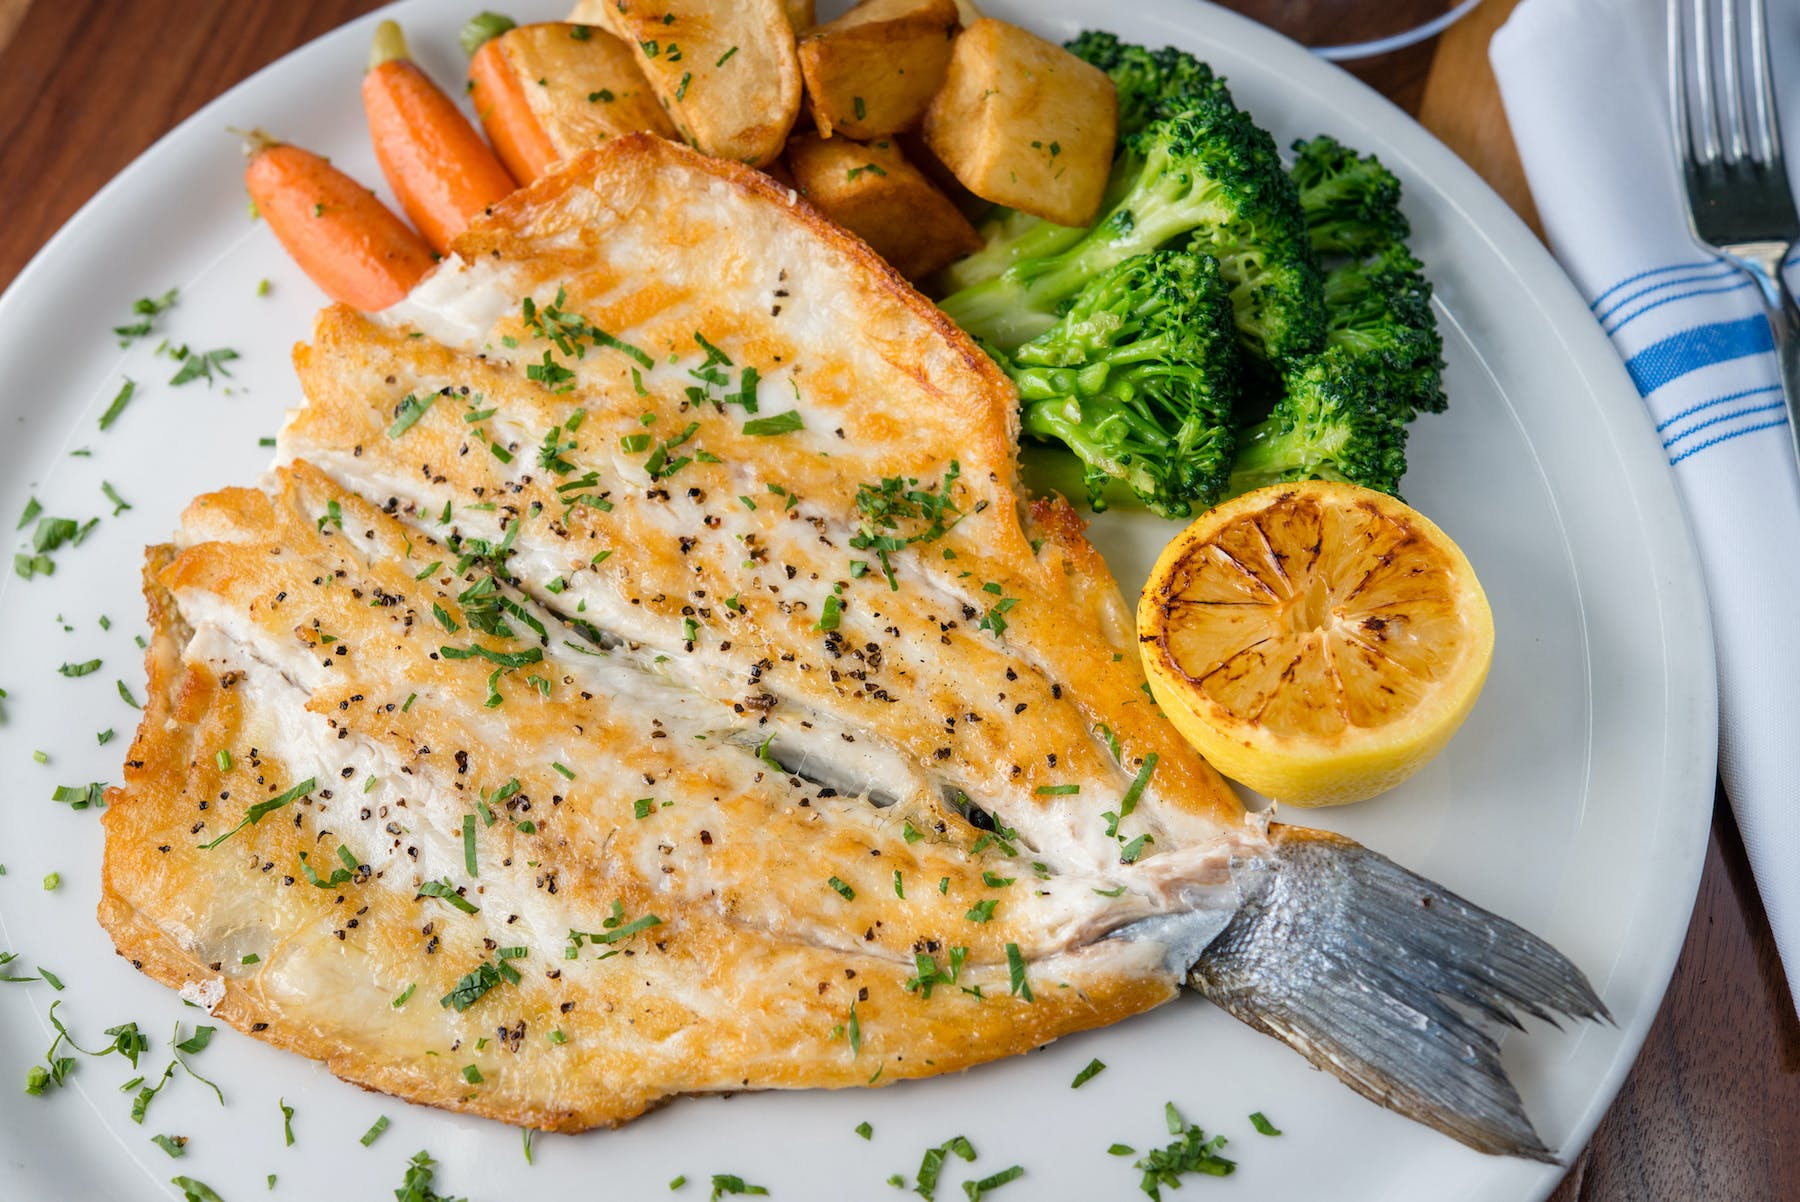 grilled chicken with broccoli and potatoes